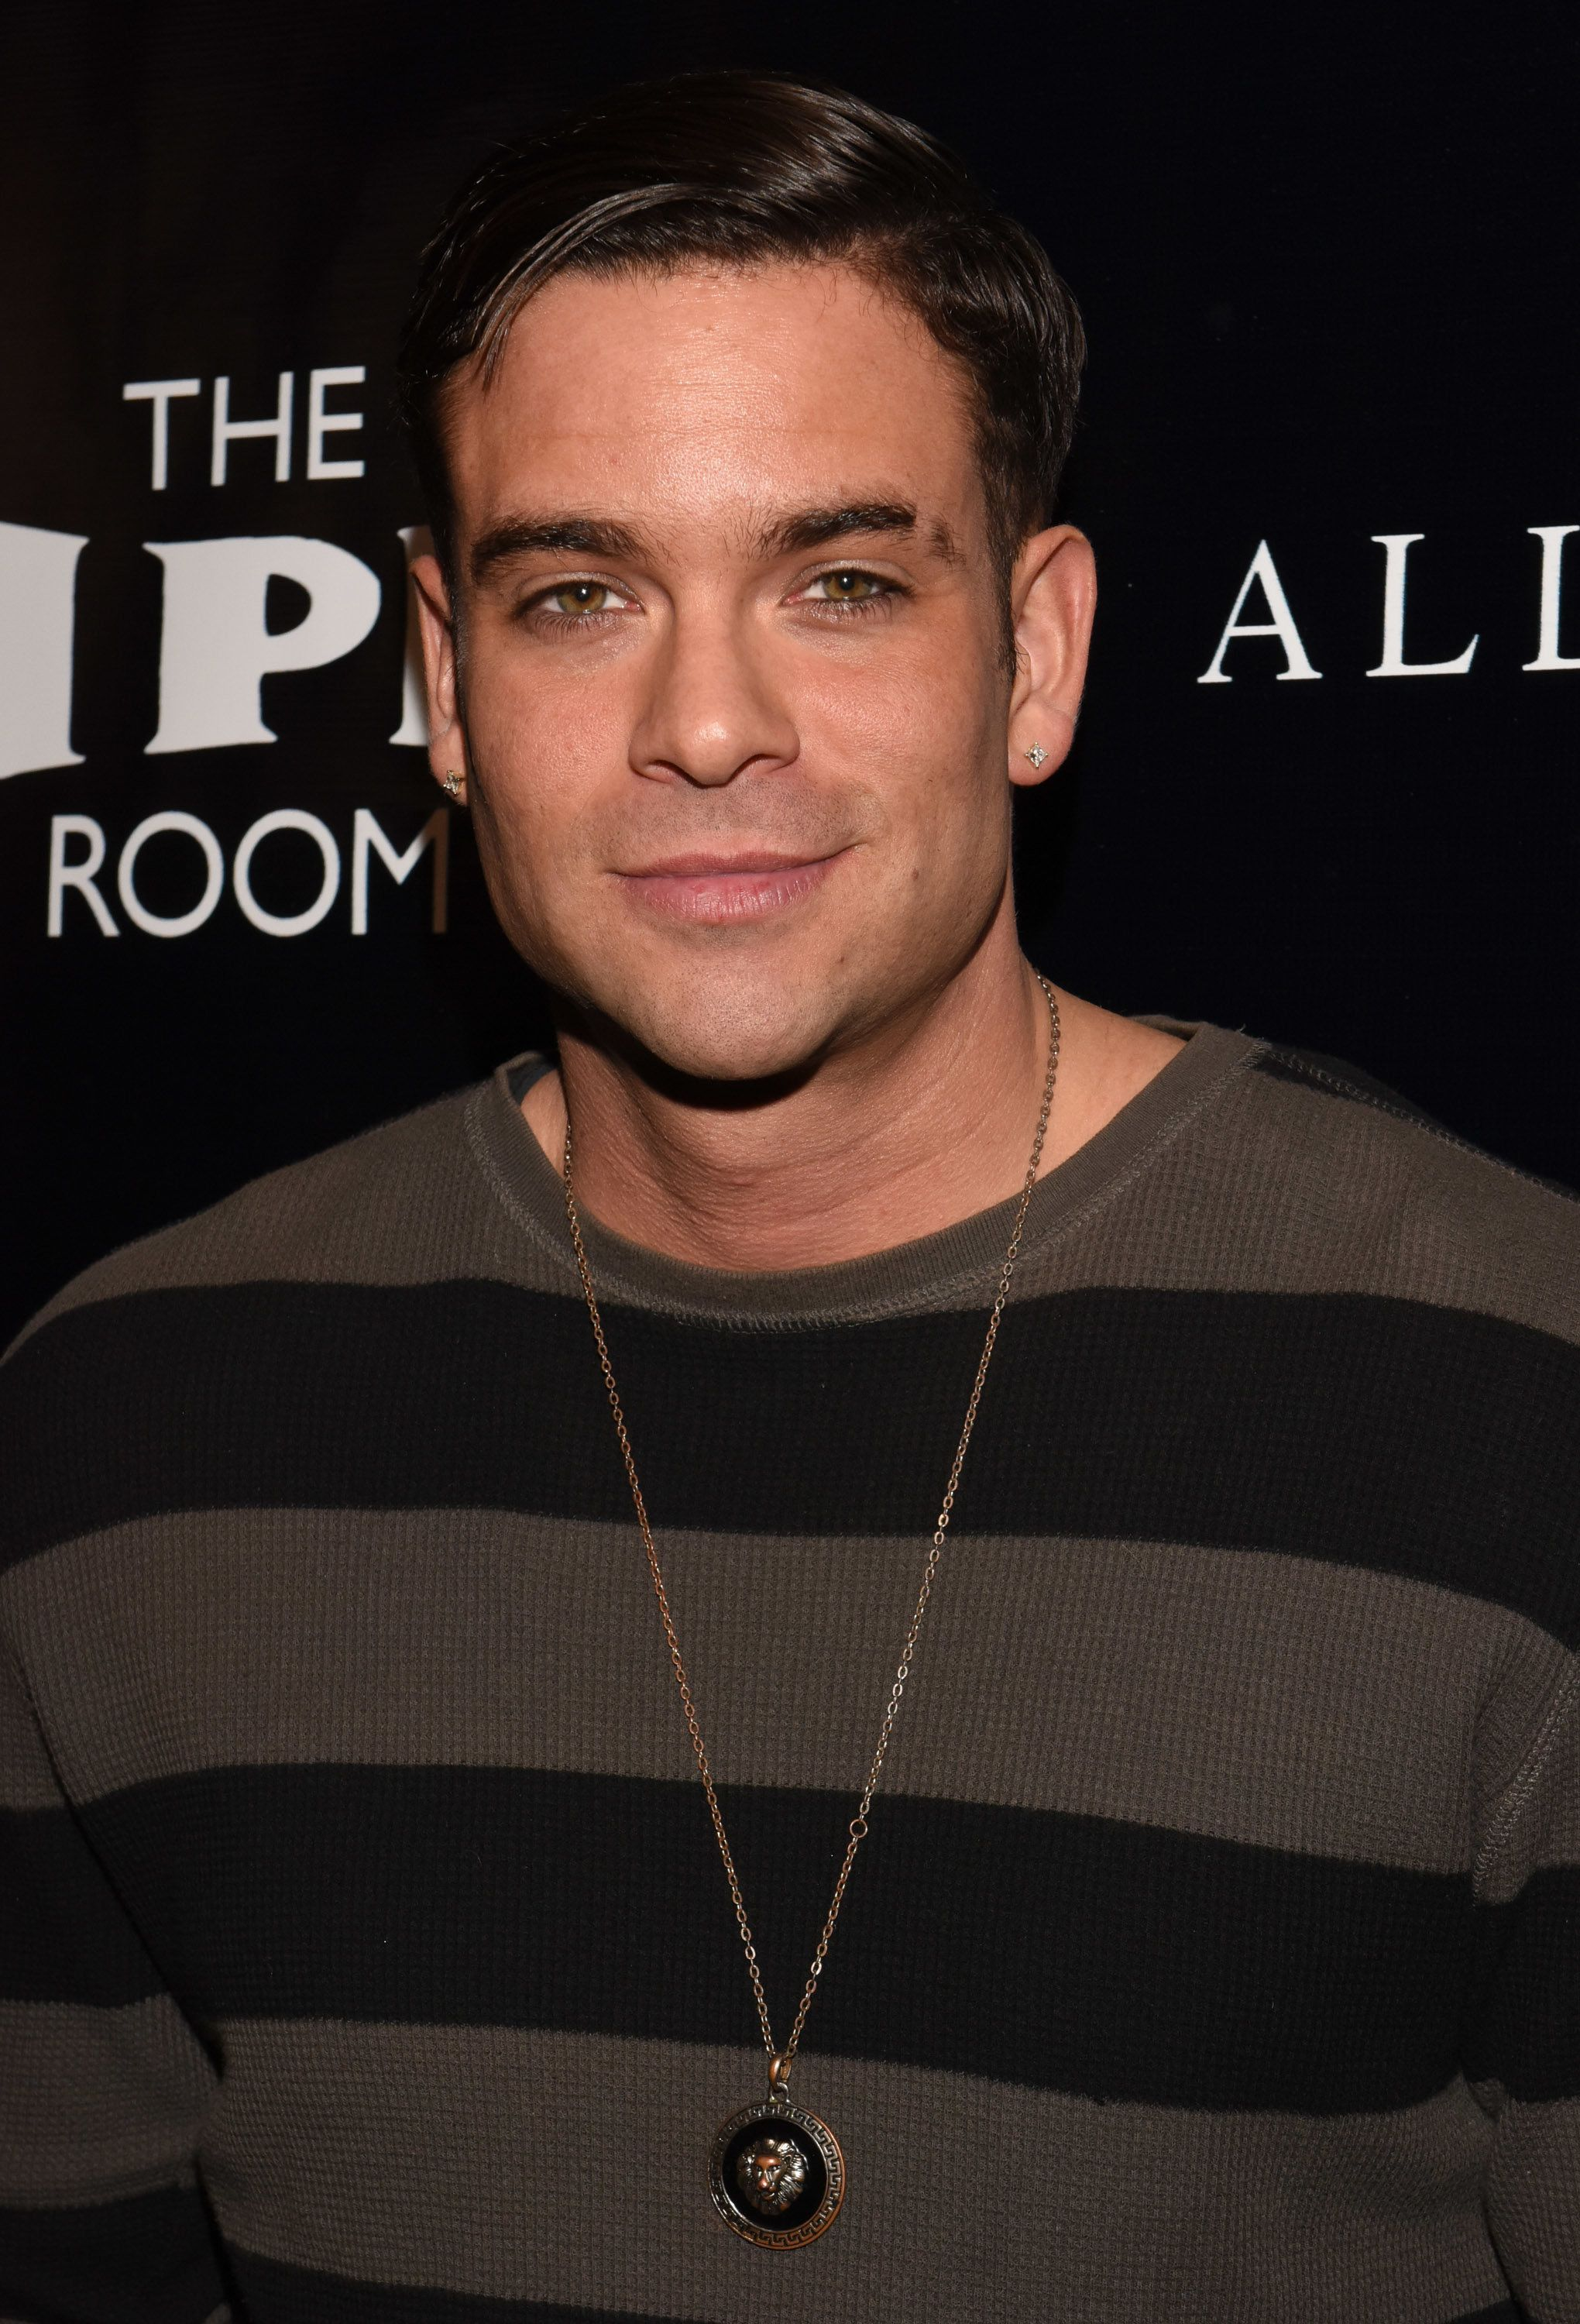 WEST HOLLYWOOD, CA - NOVEMBER 17:  Actor Mark Salling attends The Official Viper Room Re-Launch Party With Performance By X Ambassadors, Dj Set By Zen Freeman at The Viper Room on November 17, 2015 in West Hollywood, California.  (Photo by Vivien Killilea/Getty Images for The Viper Room)